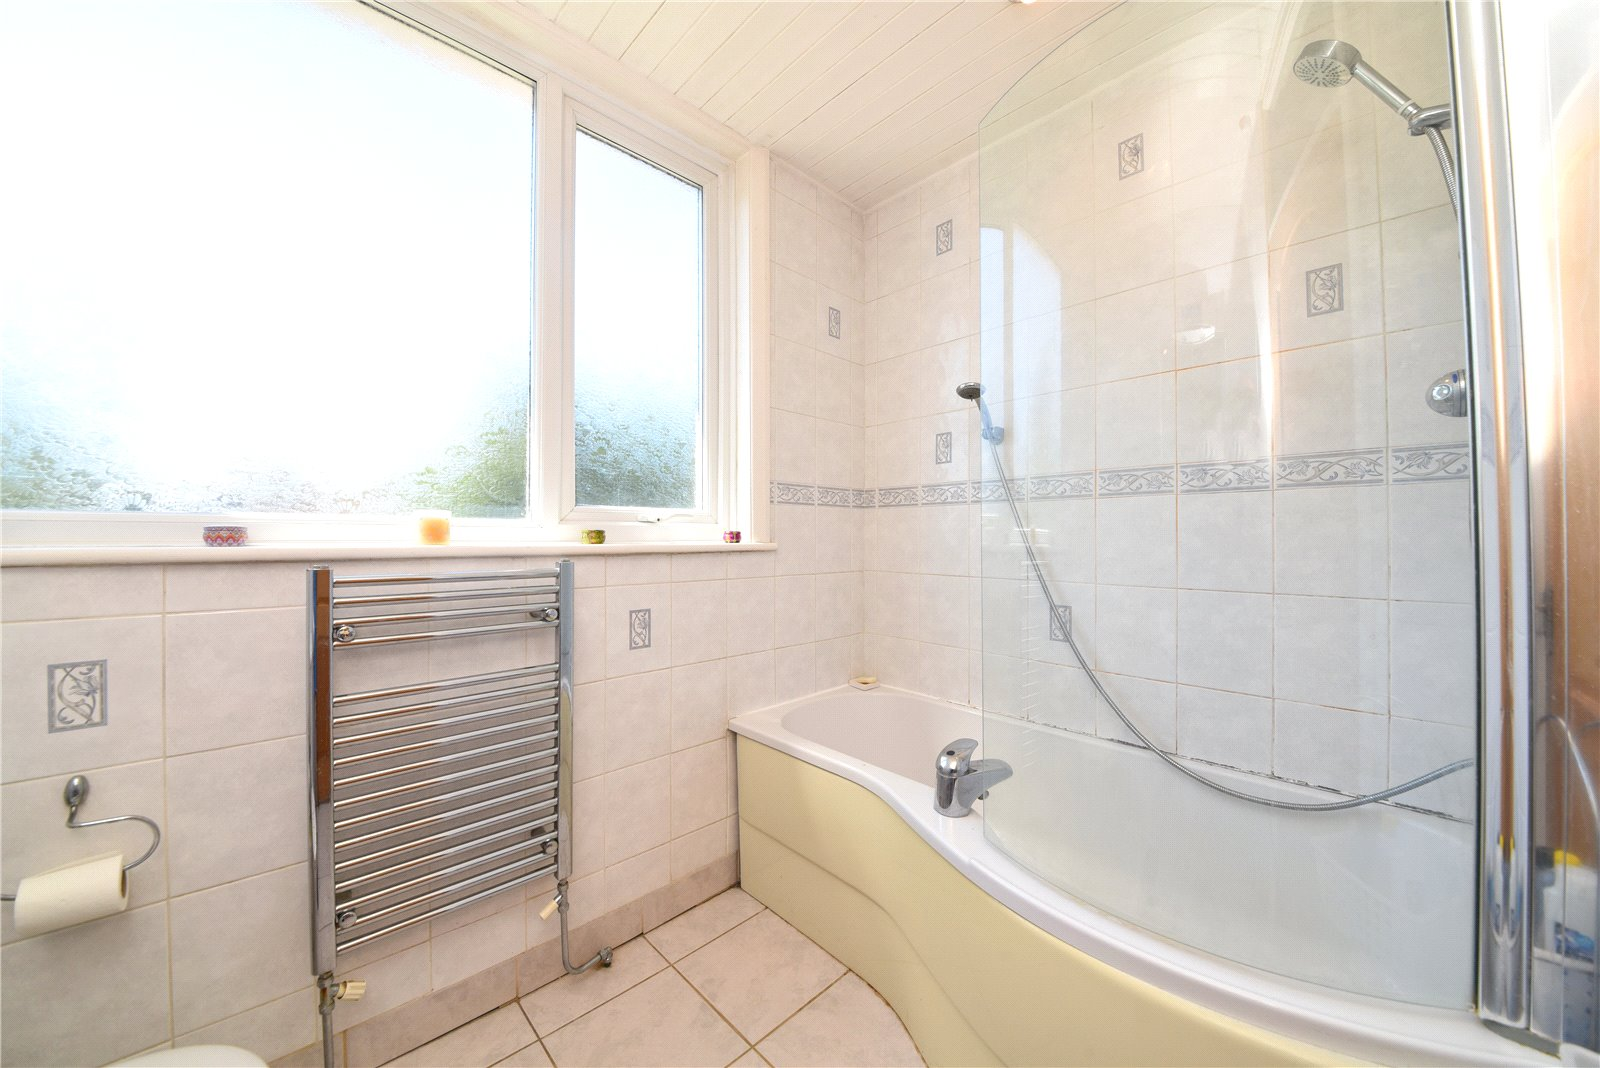 3 bed house for sale in The Fairway, Southgate  - Property Image 6